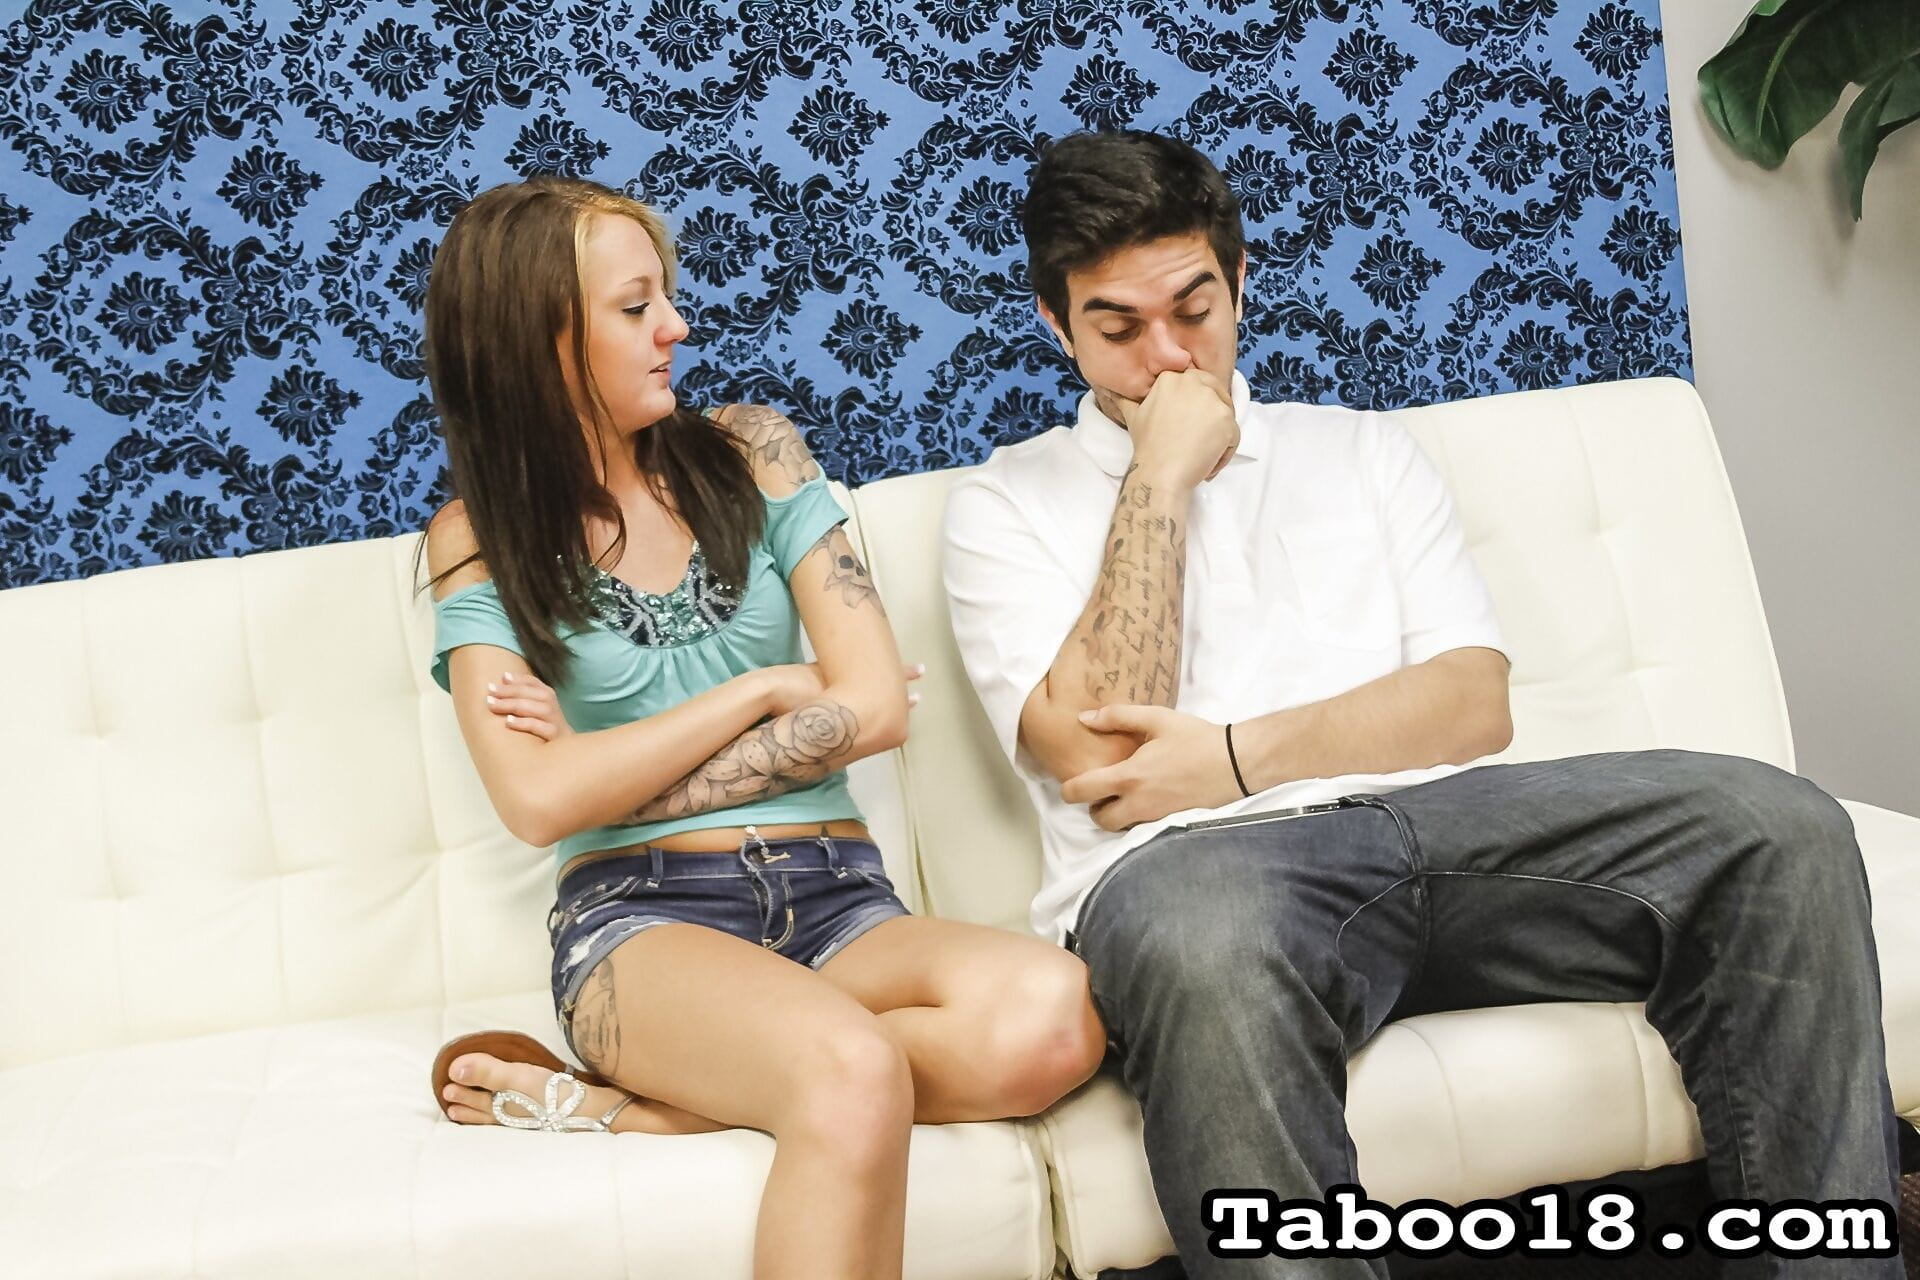 Kendra coles stepbrother accidentally broke his dads cellphone - part 230